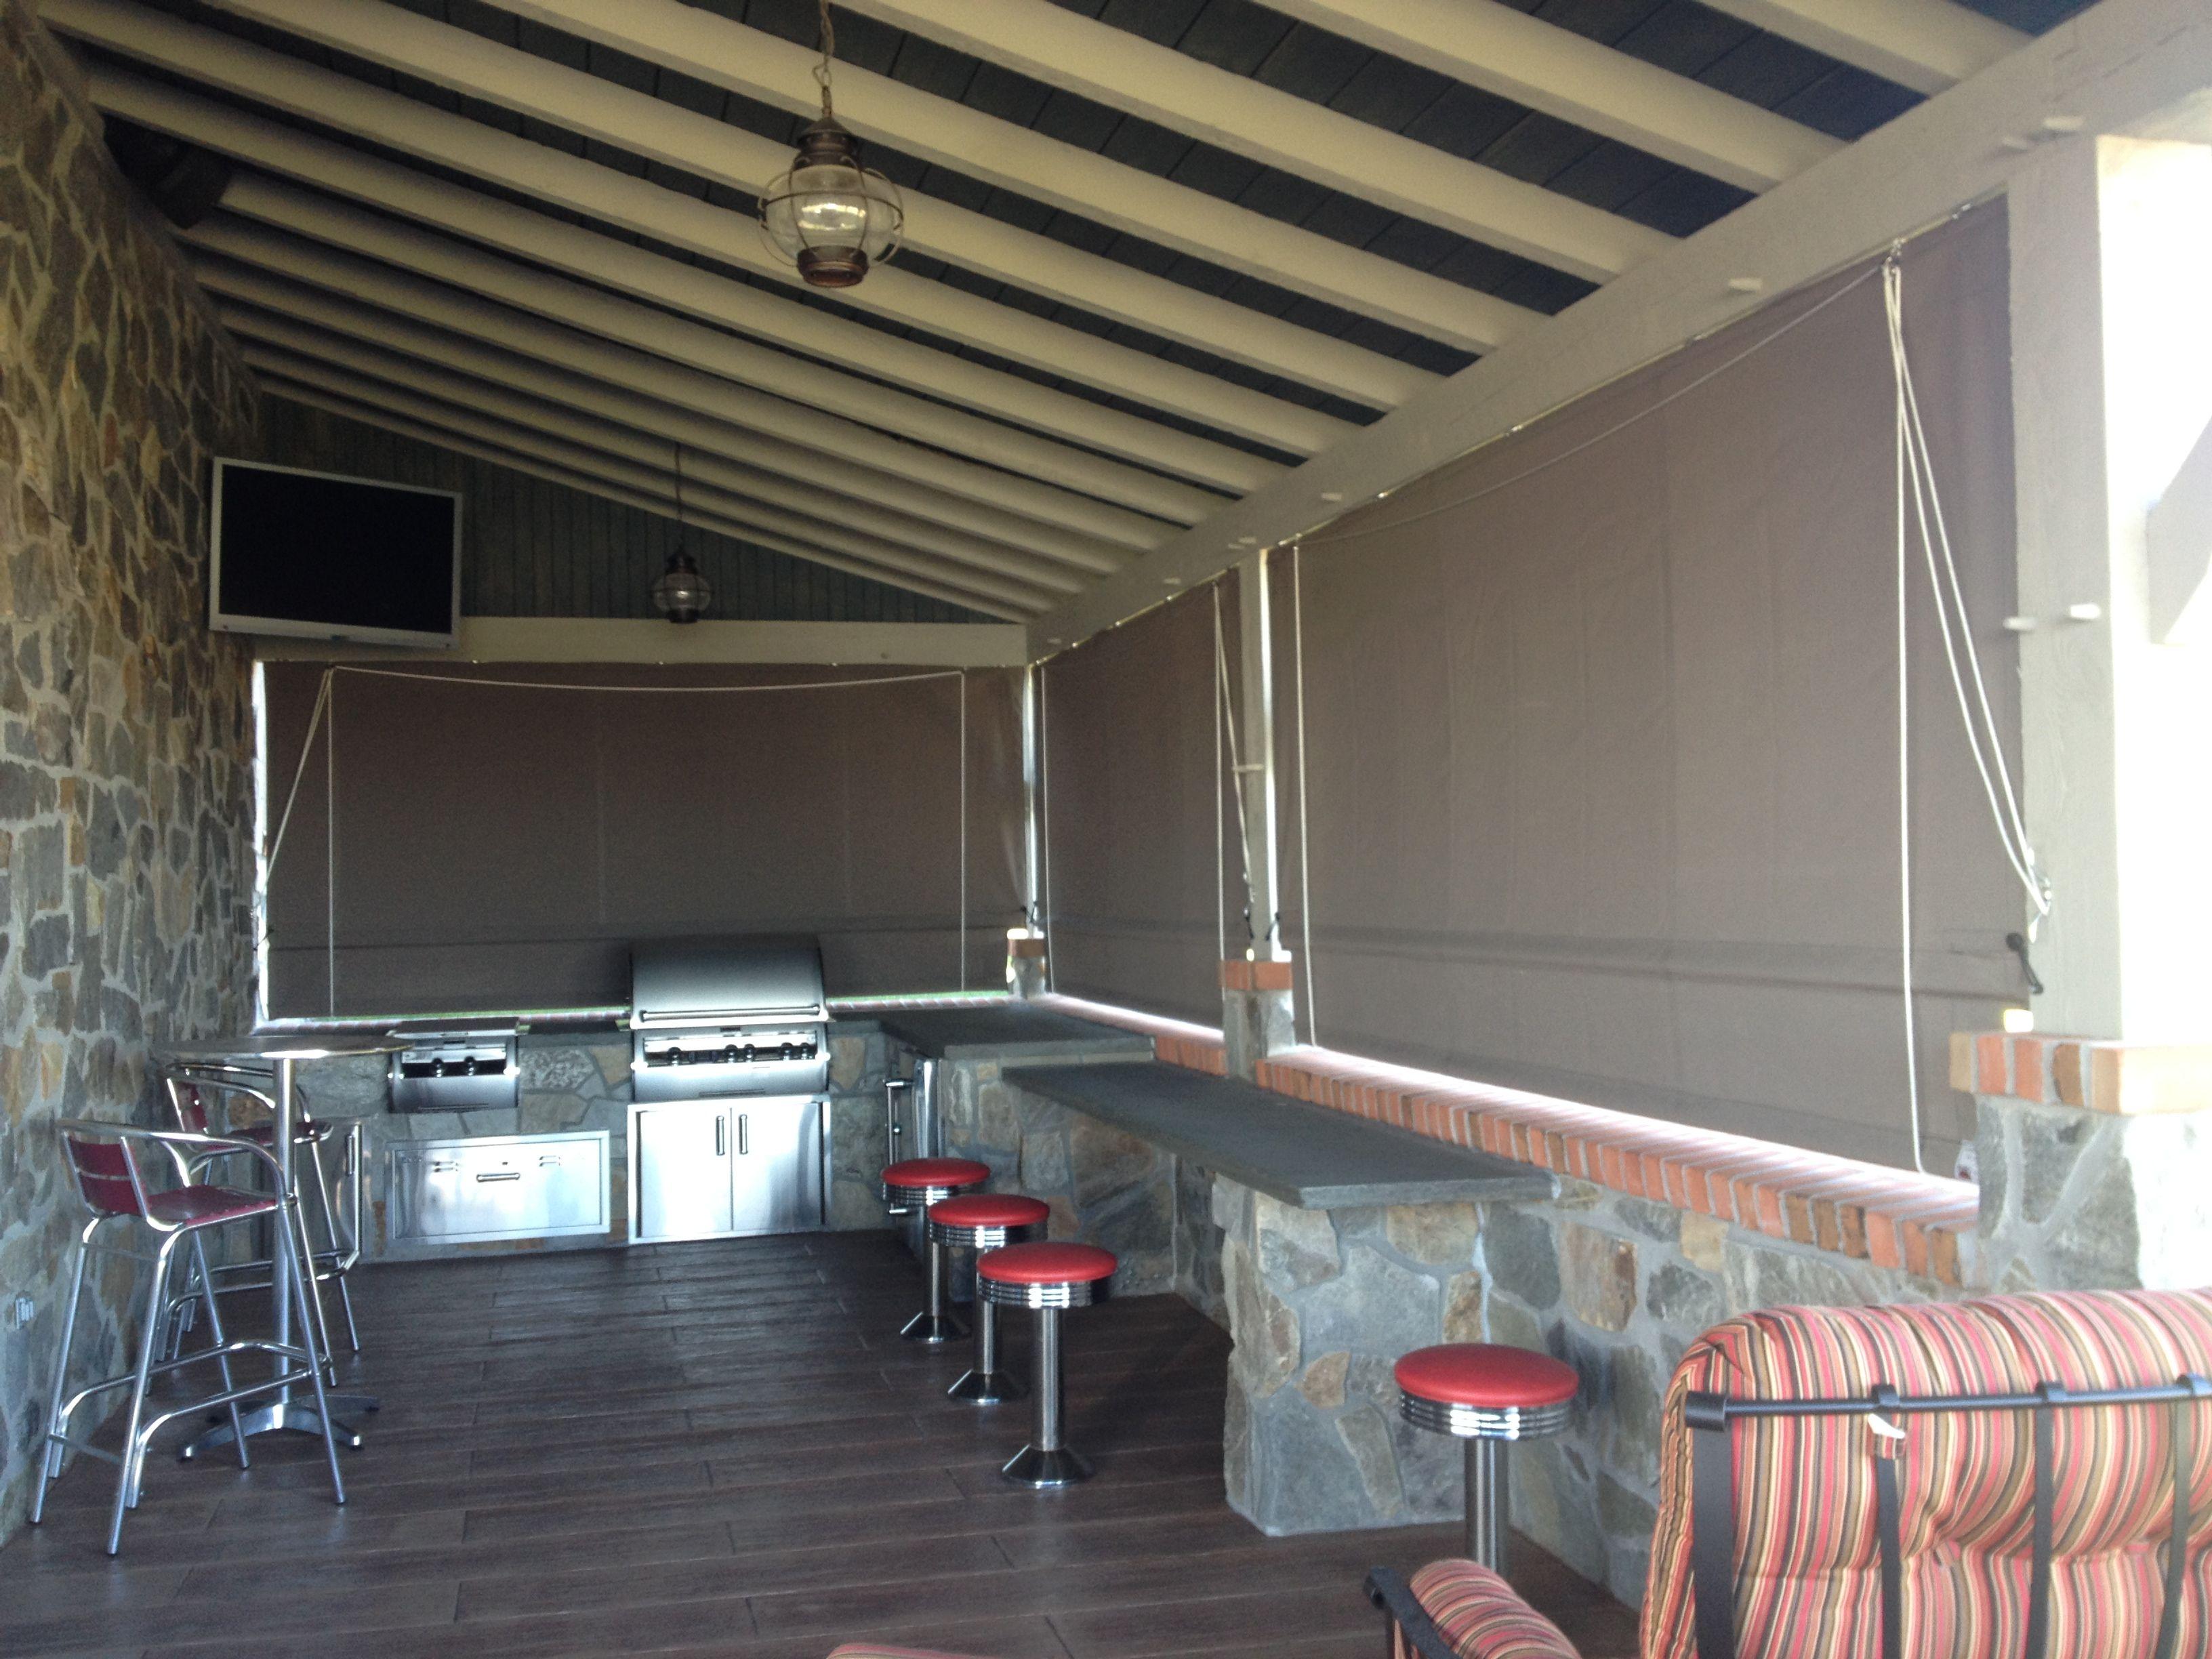 Residential Drop Curtains Providing Shade For An Outdoor Kitchen And Bar Area Curtains Roll Up Out Of The Way Outdoor Kitchen Screened Porch Curtains Outdoor